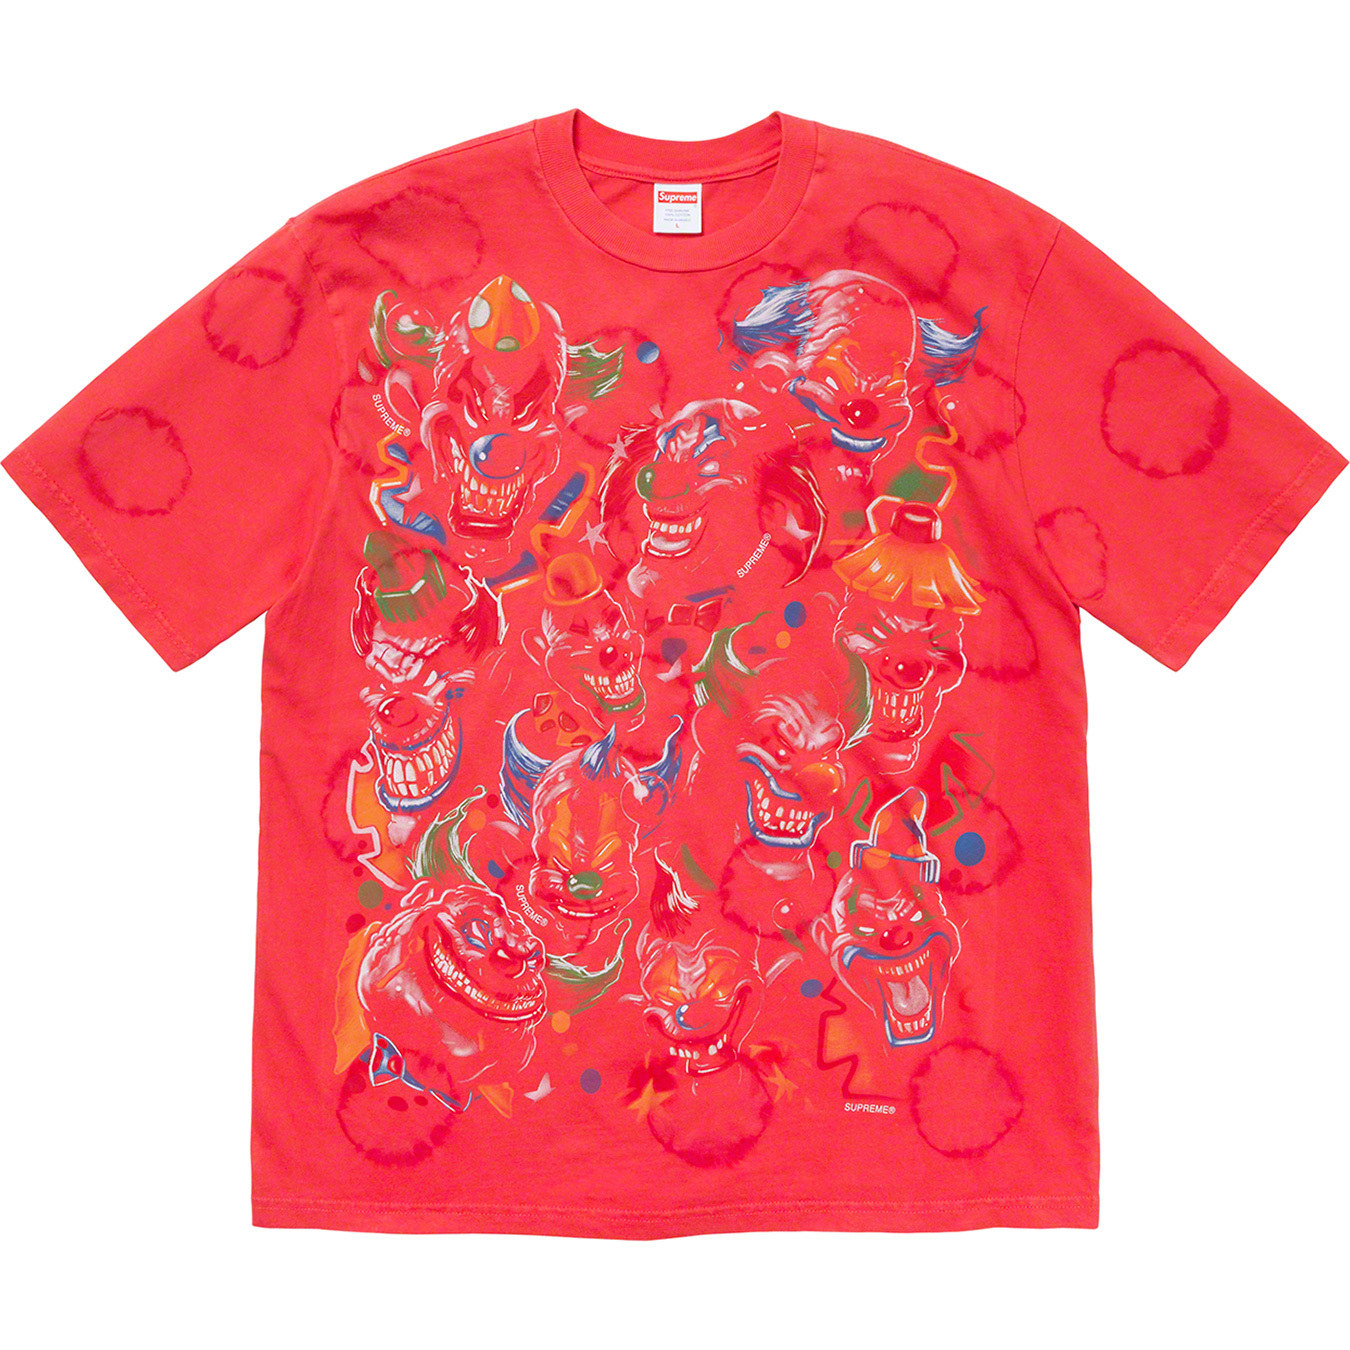 supreme-online-store-19aw-19fw-20191221-week17-clowns-tee